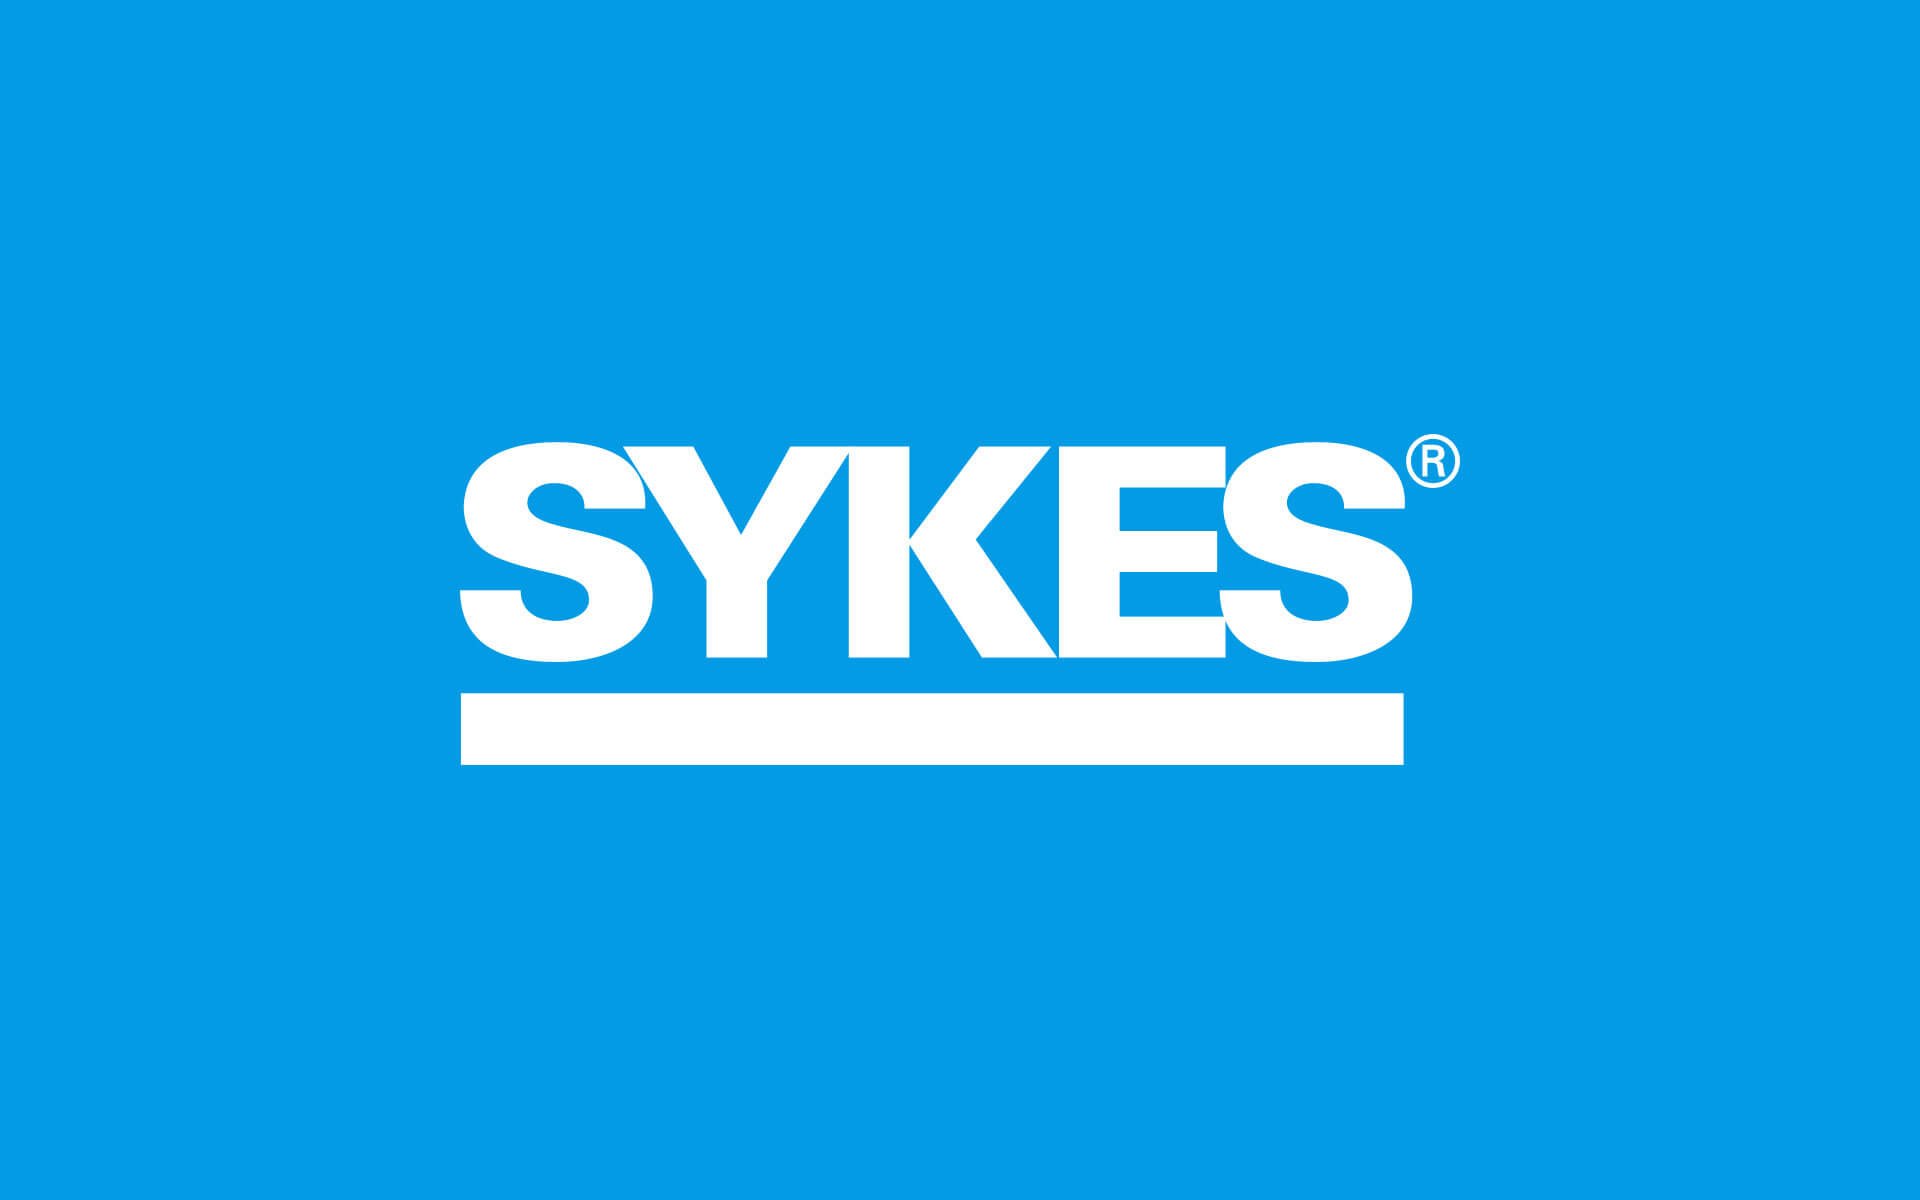 SYKES promotes online job applications amid lockdown